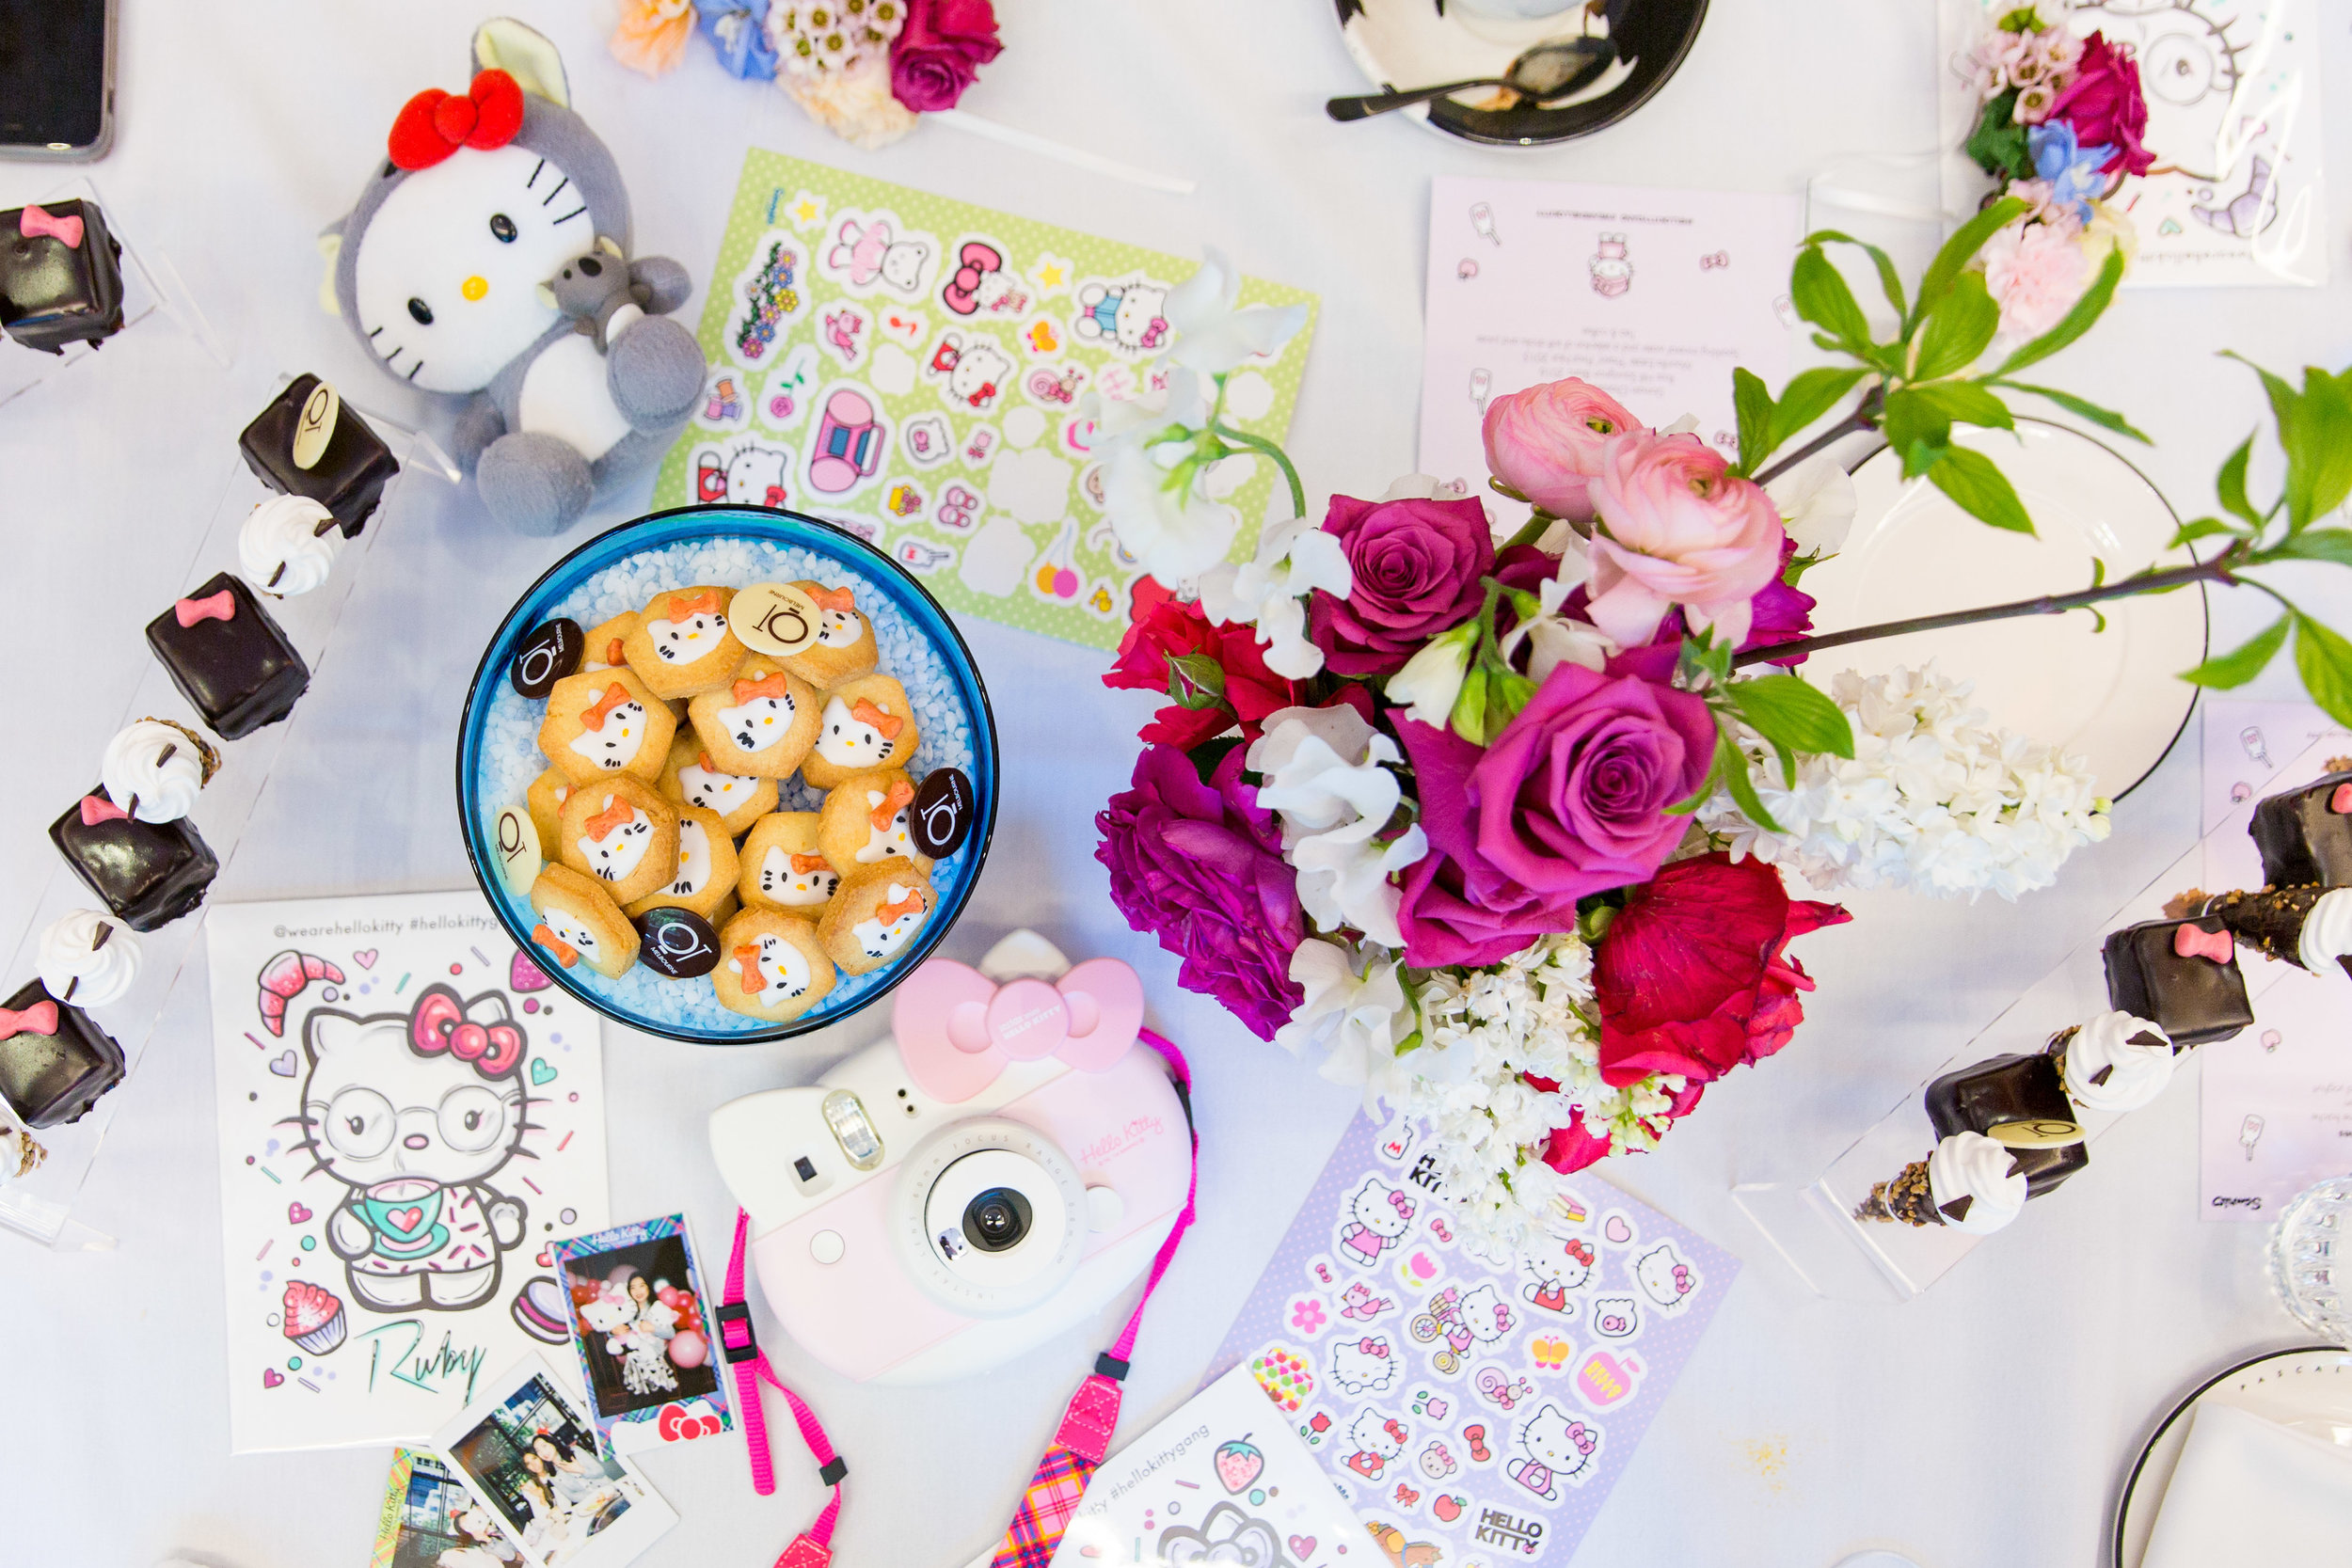 Jam on Your Collar - Hello Kitty High Tea - QT Melbourne - 0335.1.jpg